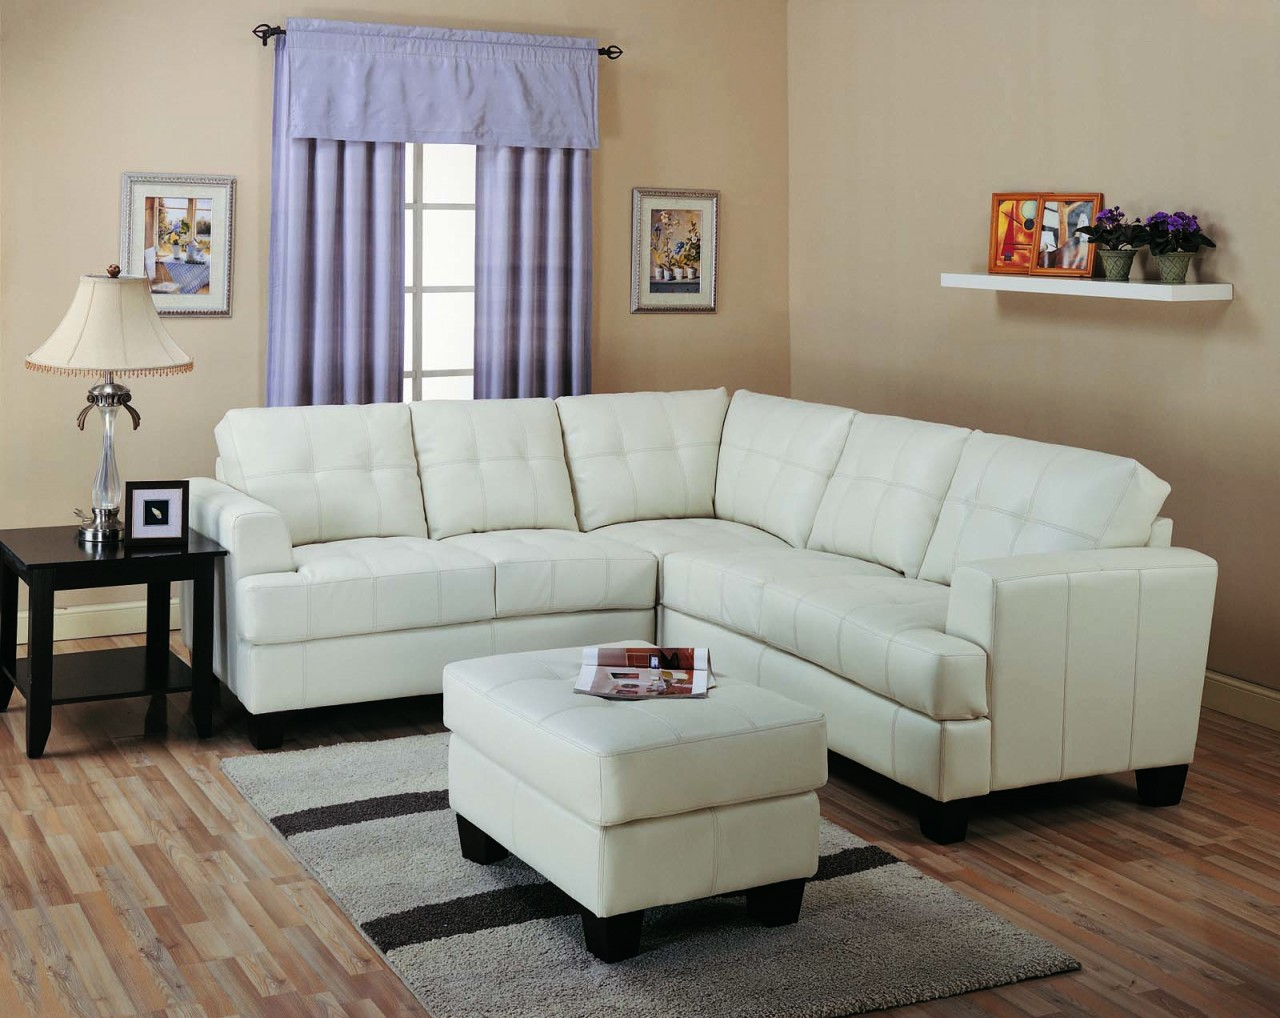 Types of best small sectional couches for small living for Couch for drawing room